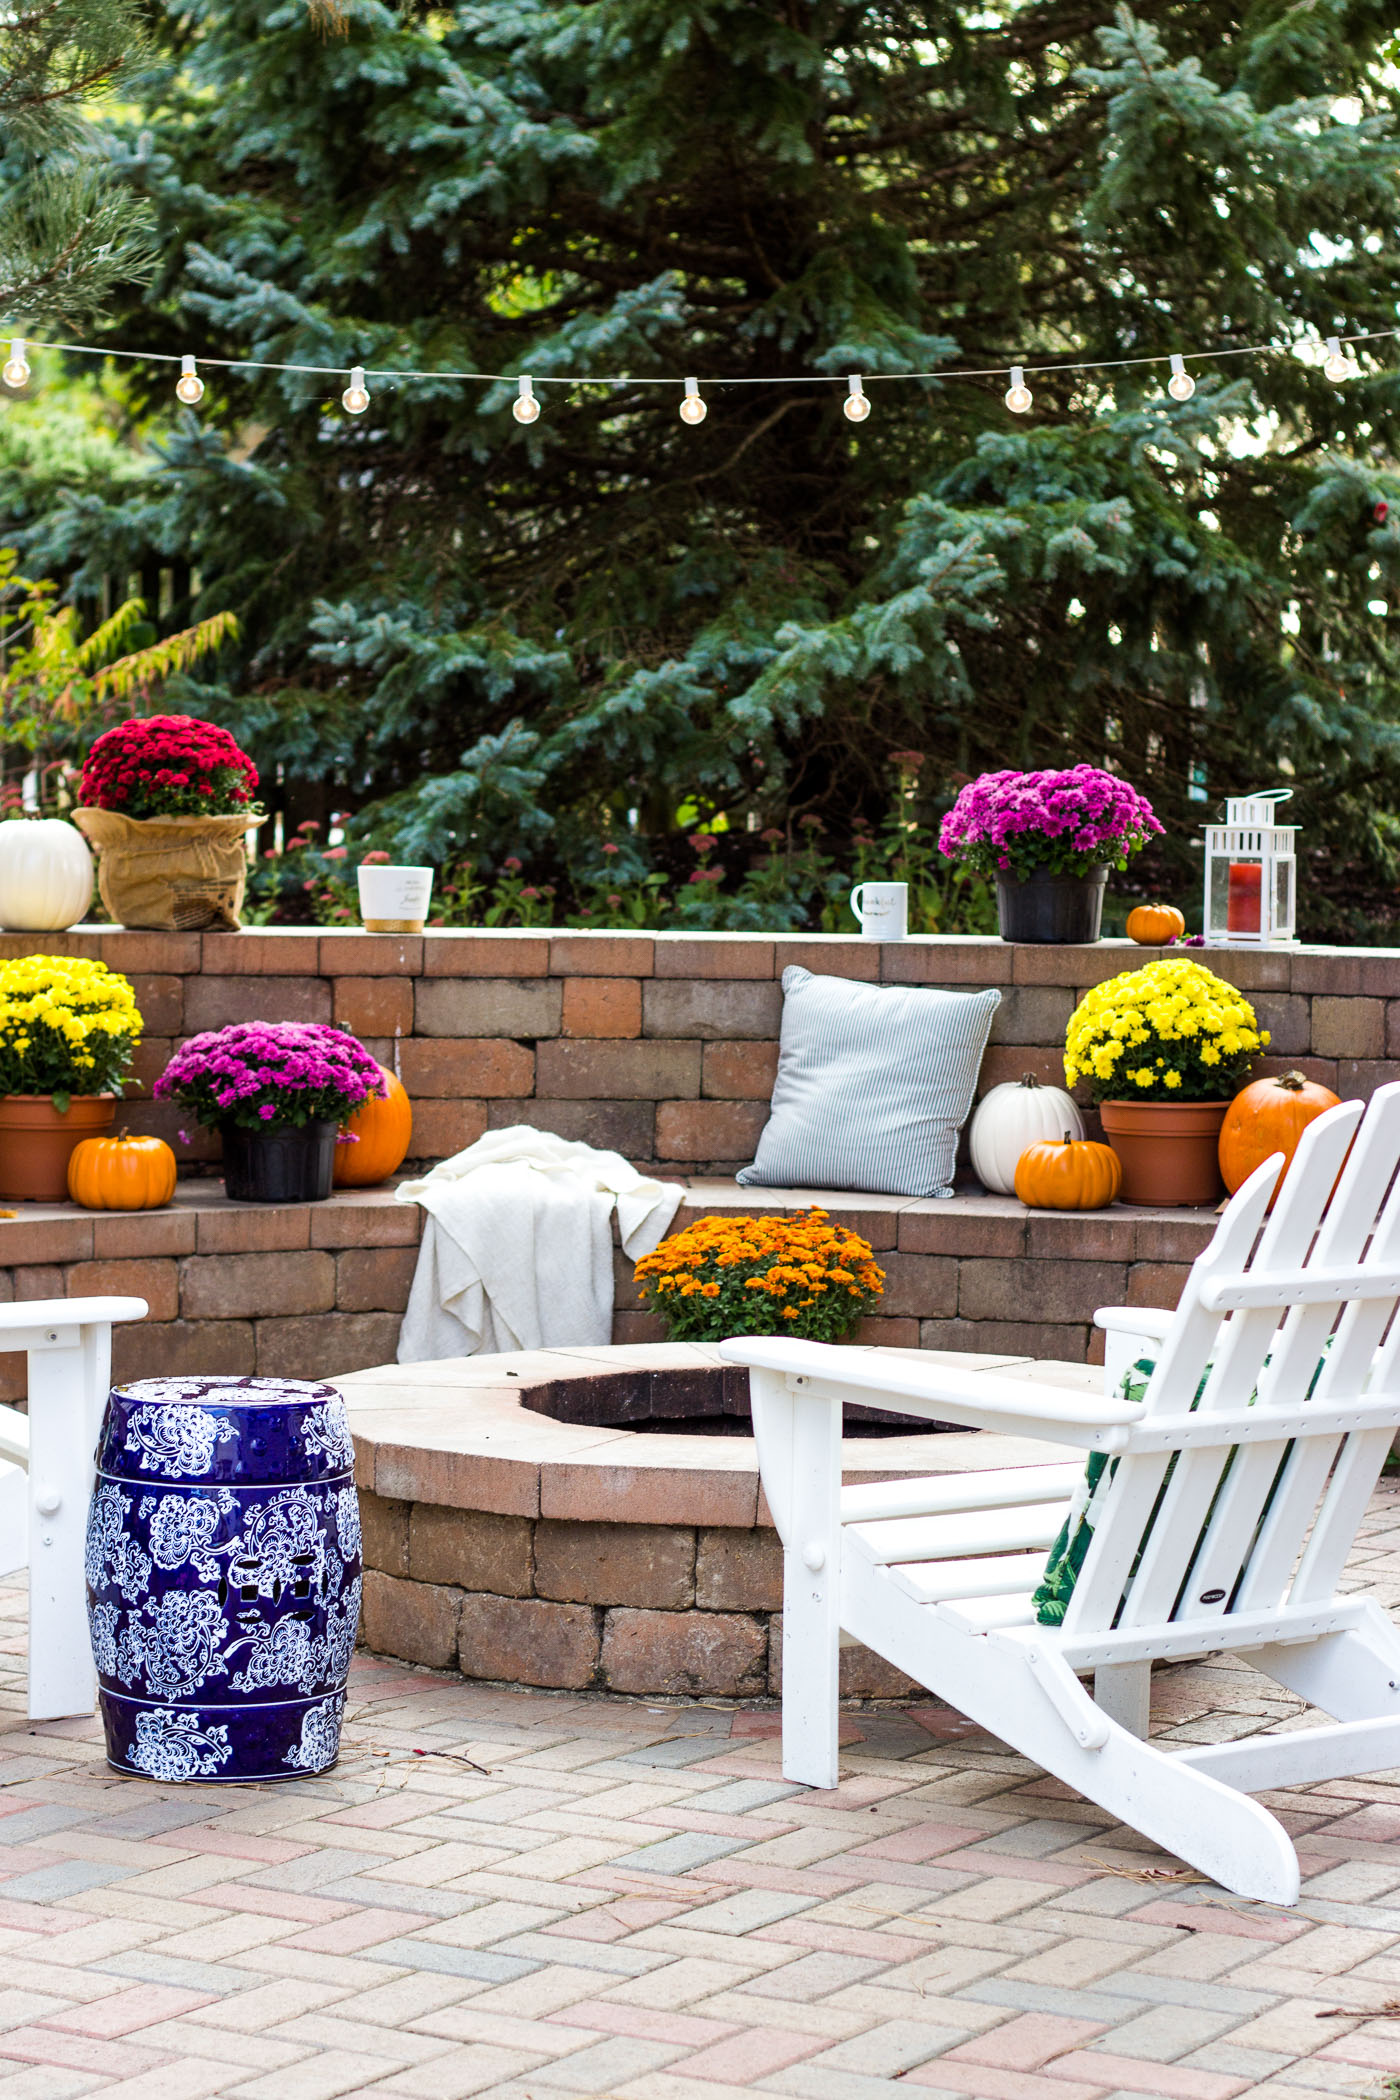 Our Fall Backyard | Shining on Design on Fall Backyard Decorating Ideas id=66900